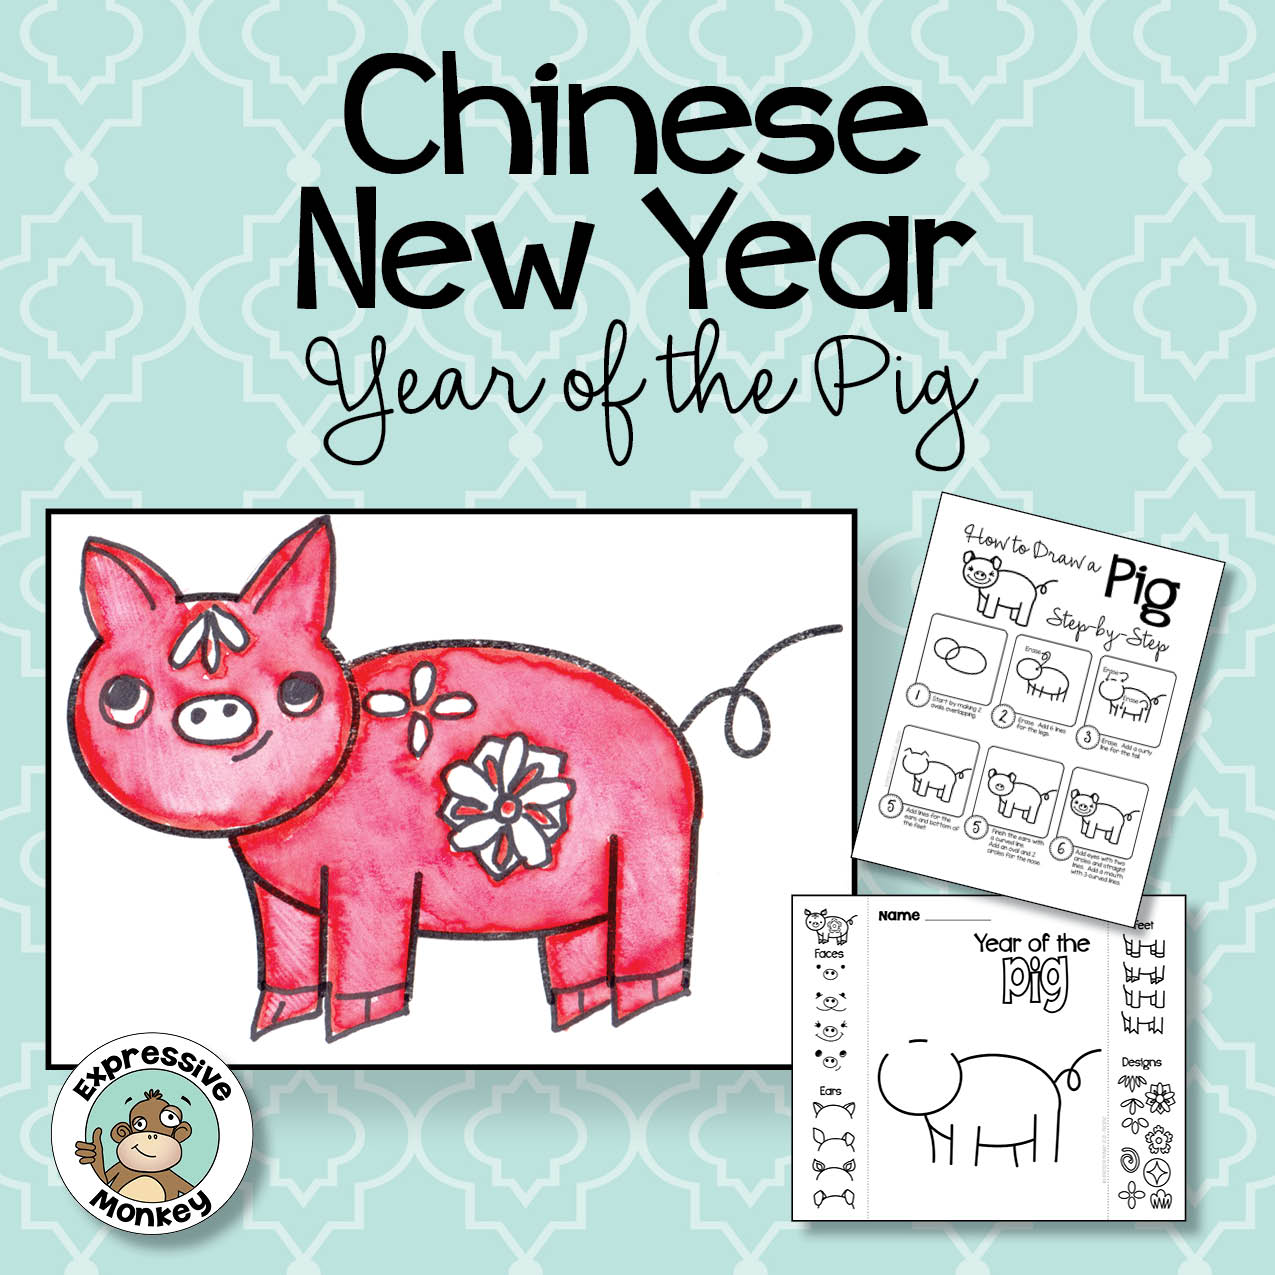 Chinese New Year Drawing: Year of the Pig Art Activity